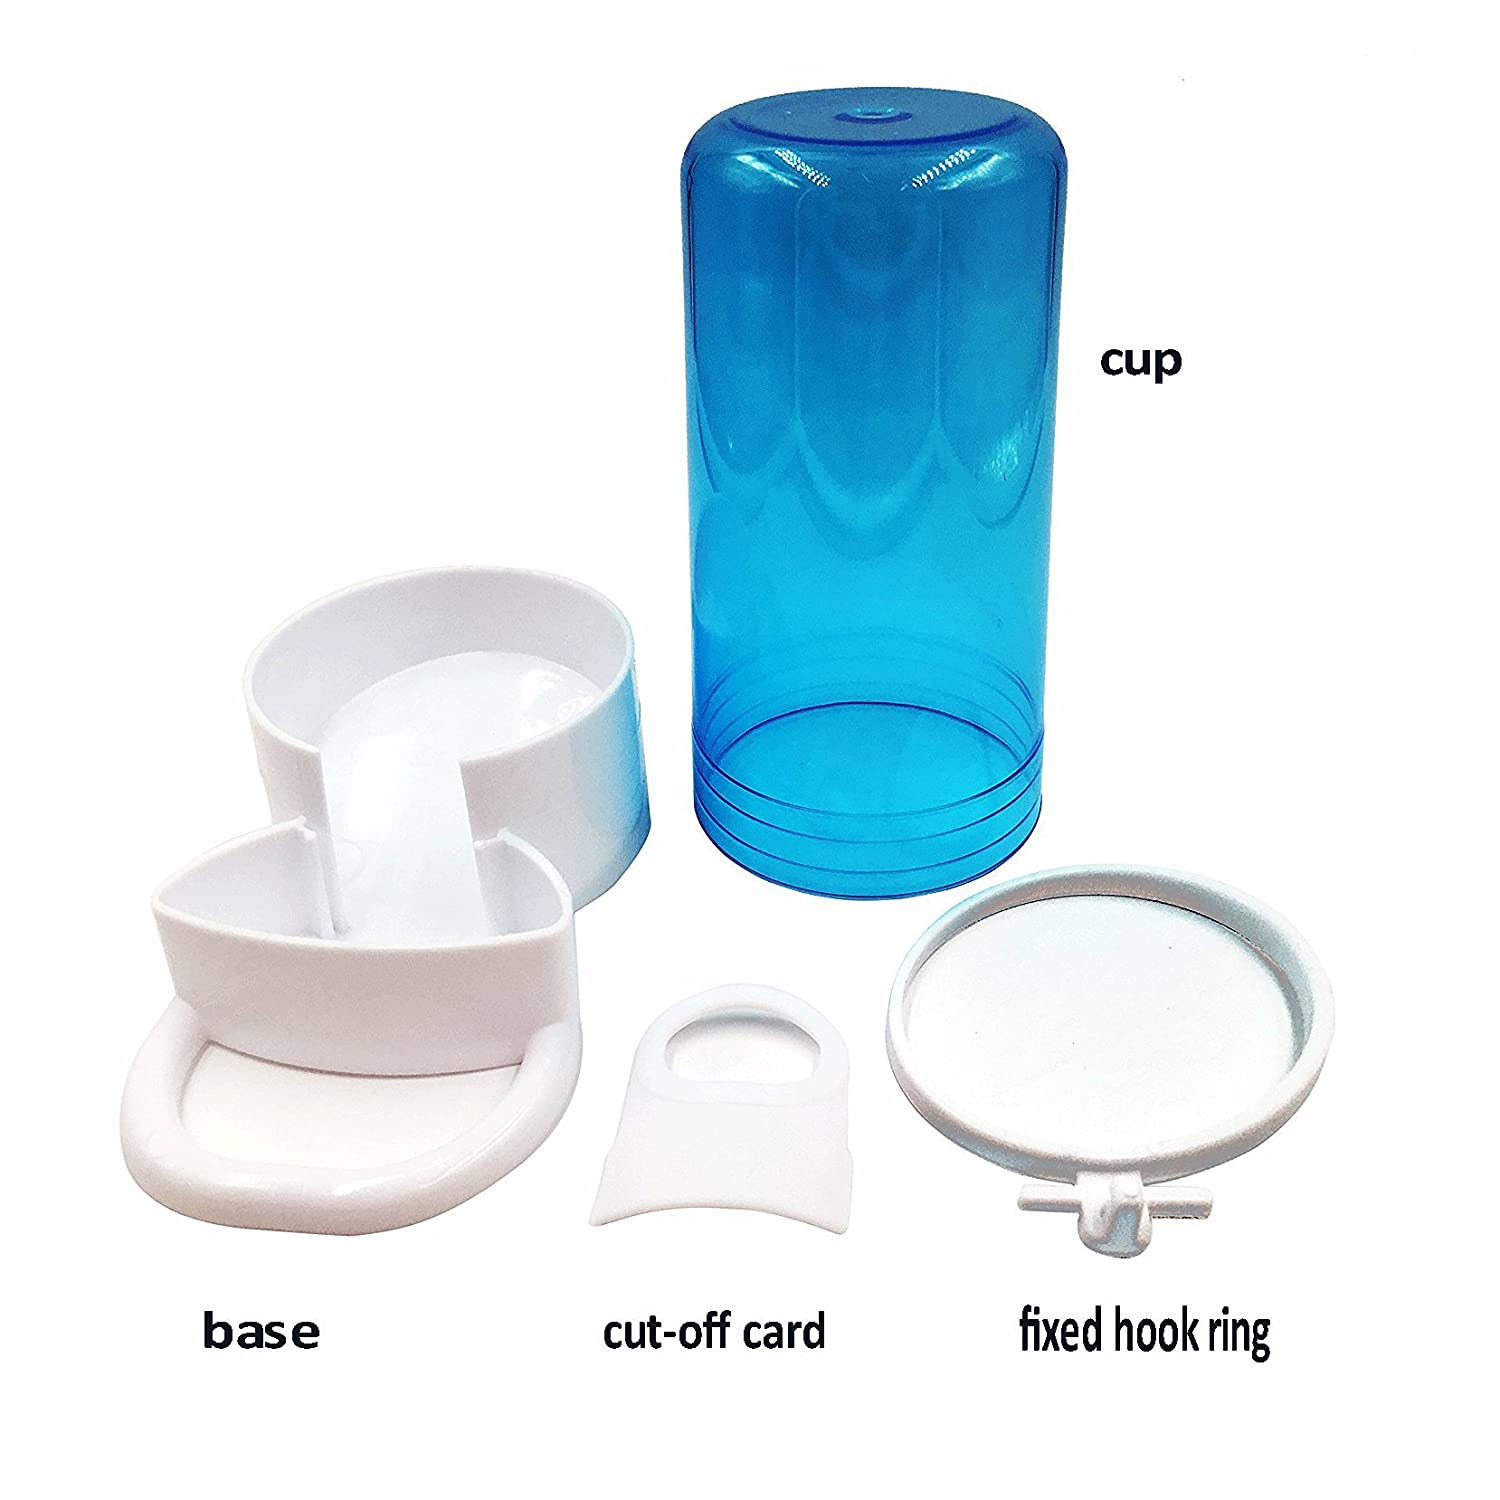 petco supplies en you animal and me shop water feeding petcostore bottle center small guard hamster feeder product